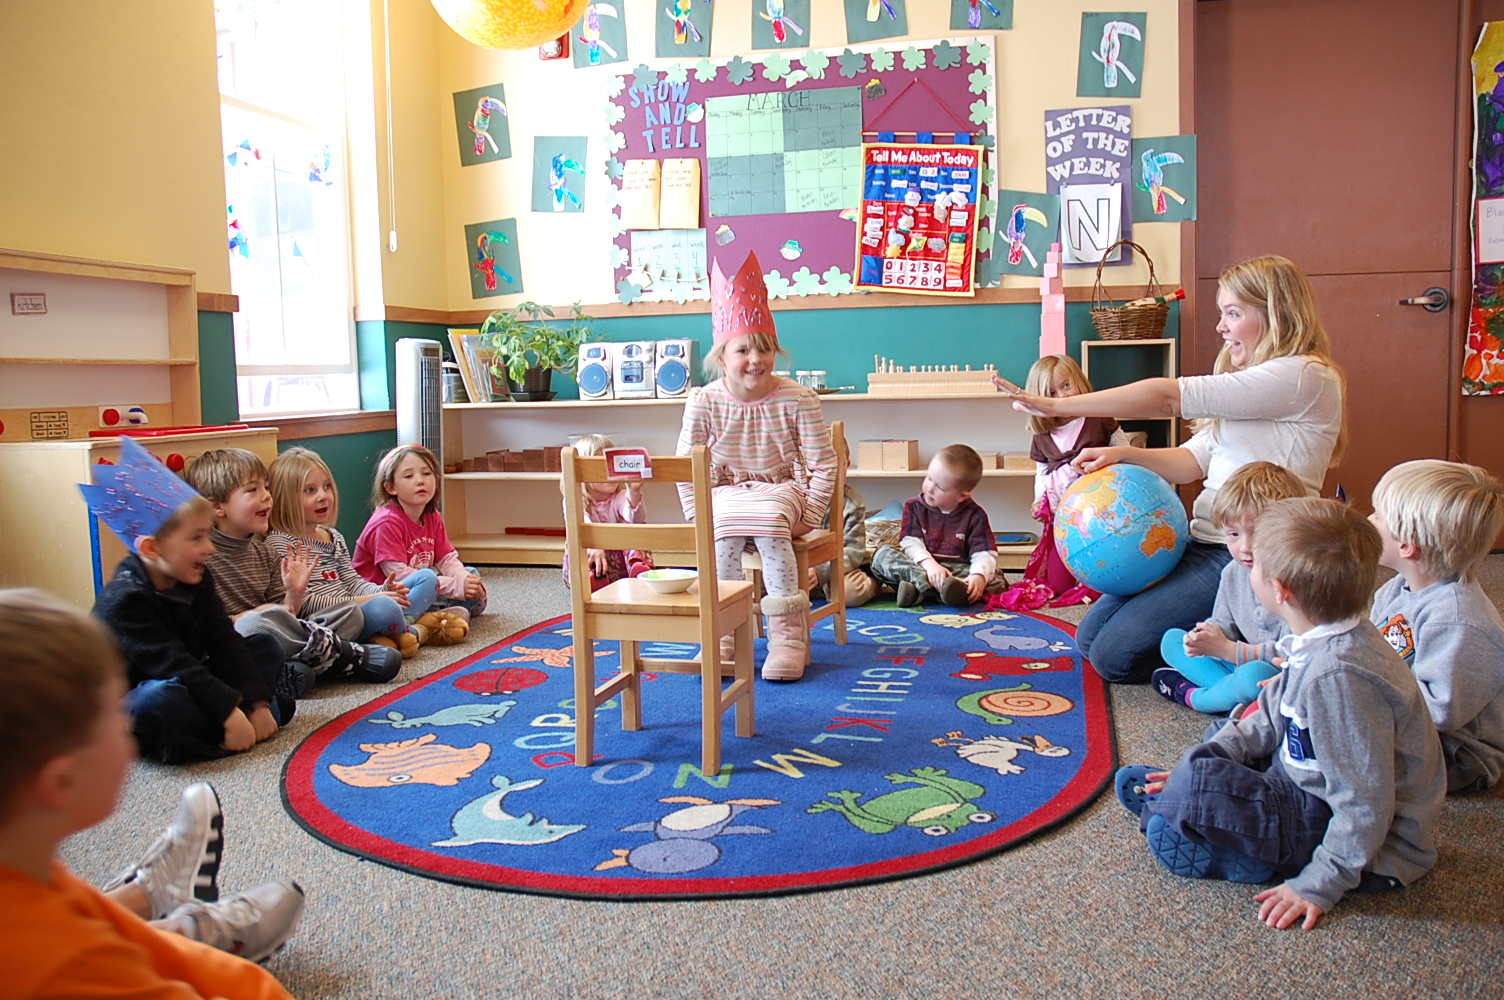 77 Childcare tough to come by in Summit County